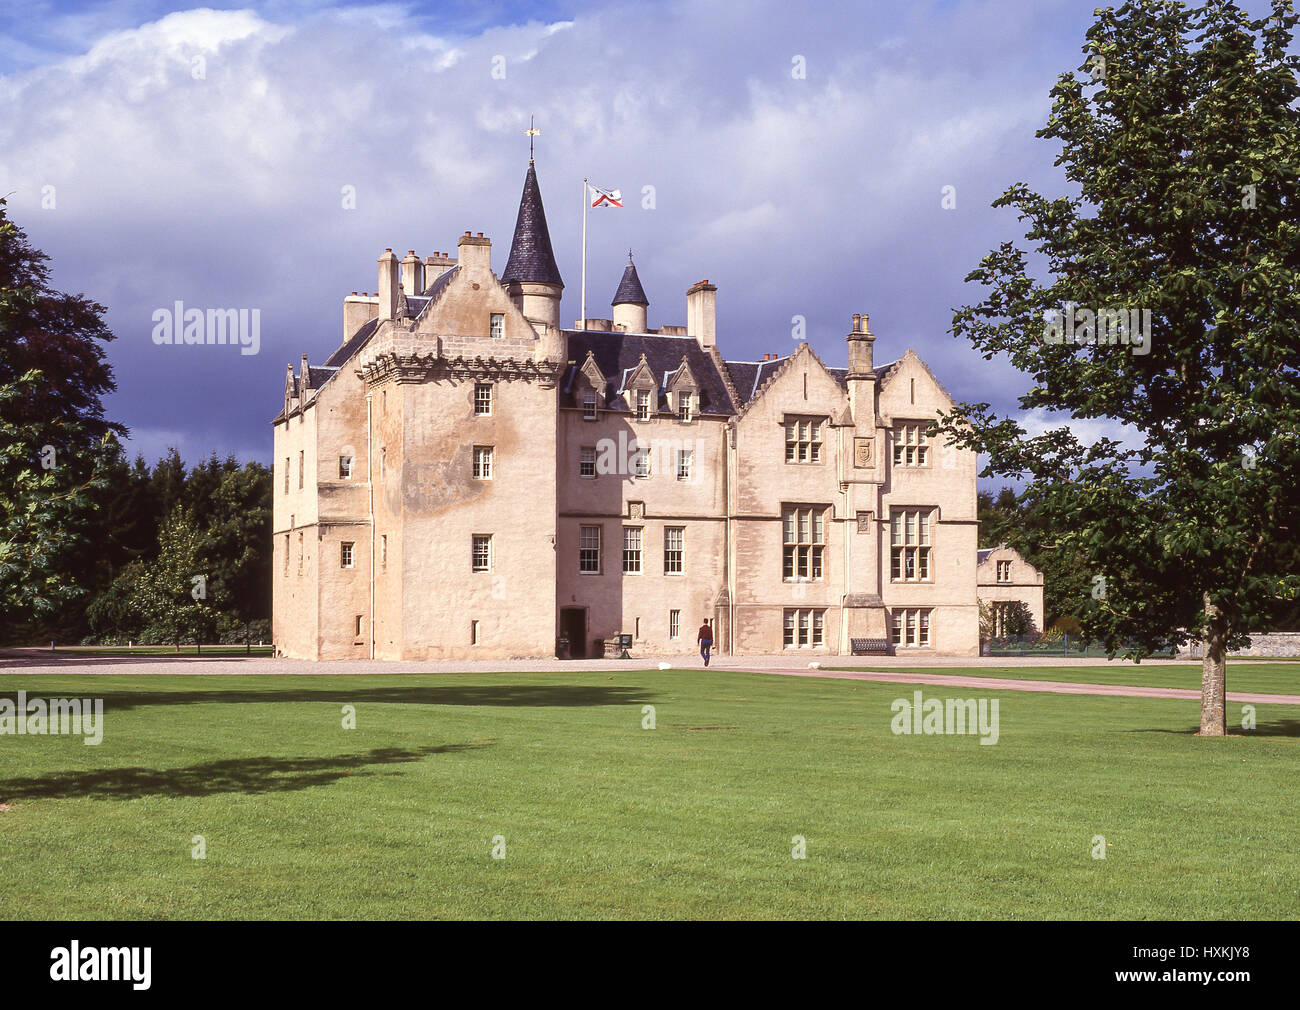 Brodie Castle and grounds, Forres, Moray, Scotland, United Kingdom - Stock Image